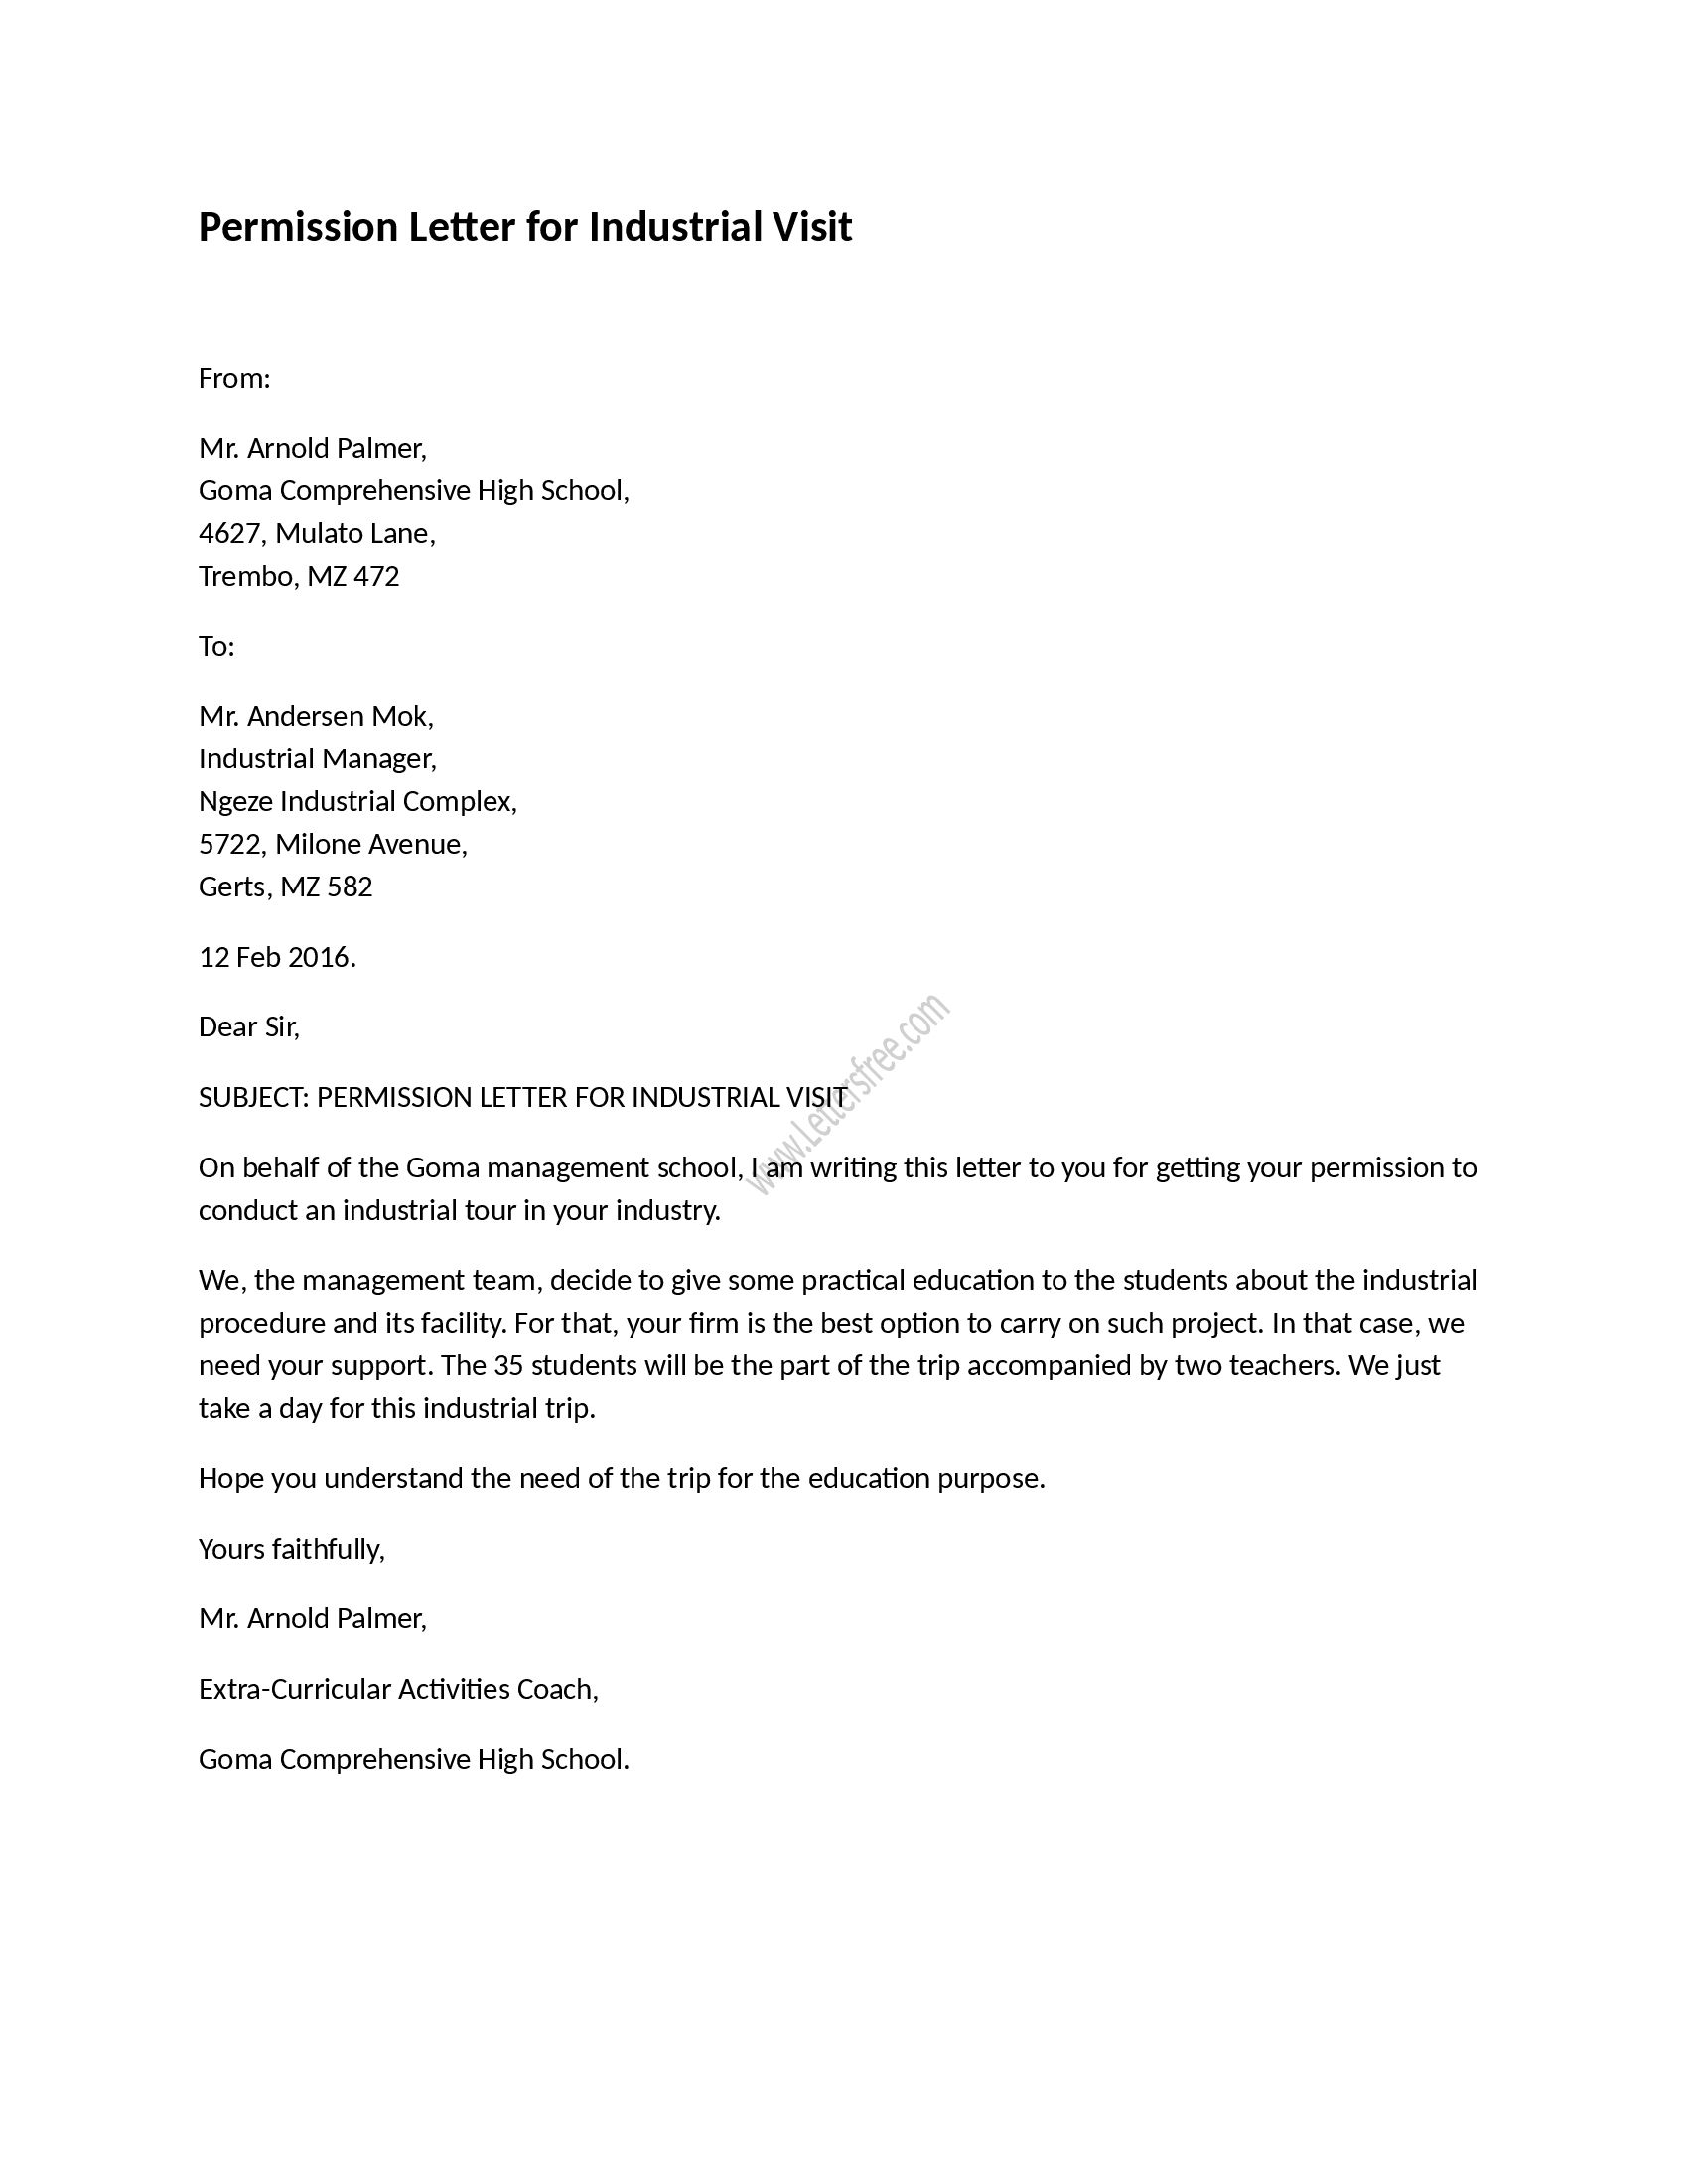 Child Care Authorization Letter Template - Permission Letter for Industrial Visit Pinterest